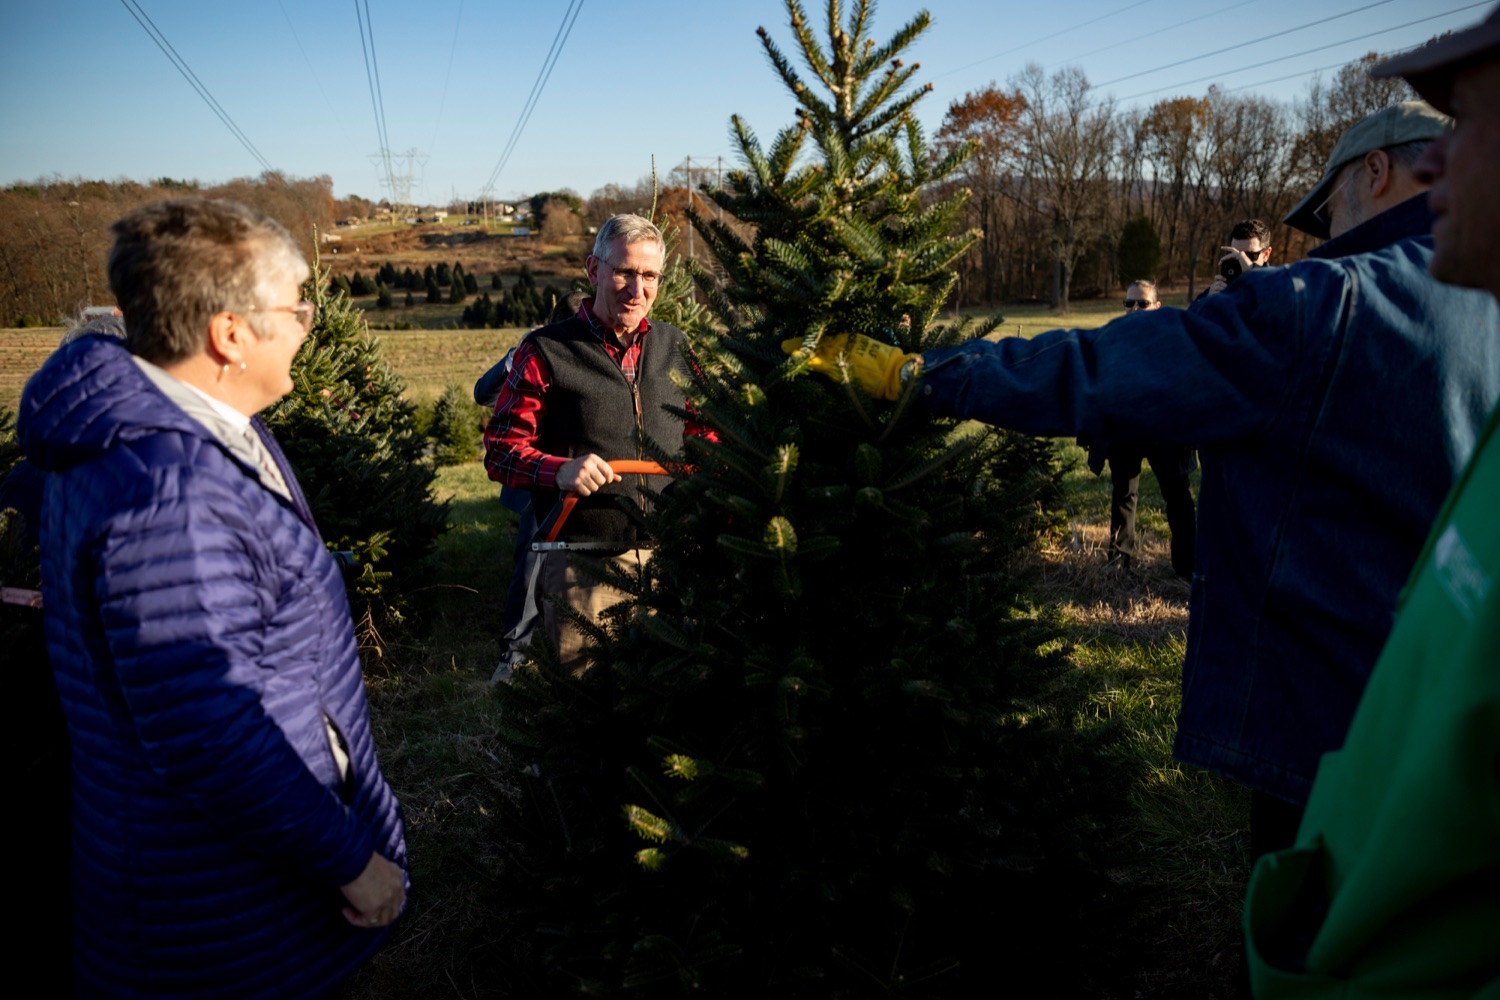 "<a href=""http://filesource.abacast.com/commonwealthofpa/photo/17615_GOV_AGRIC_Christmas_Trees_NK_010.JPG"" target=""_blank"">⇣ Download Photo<br></a>Pennsylvania Agriculture Secretary Russell Redding smiles with his wife, Nina, left, before cutting down a Christmas tree on Monday, November 25, 2019."